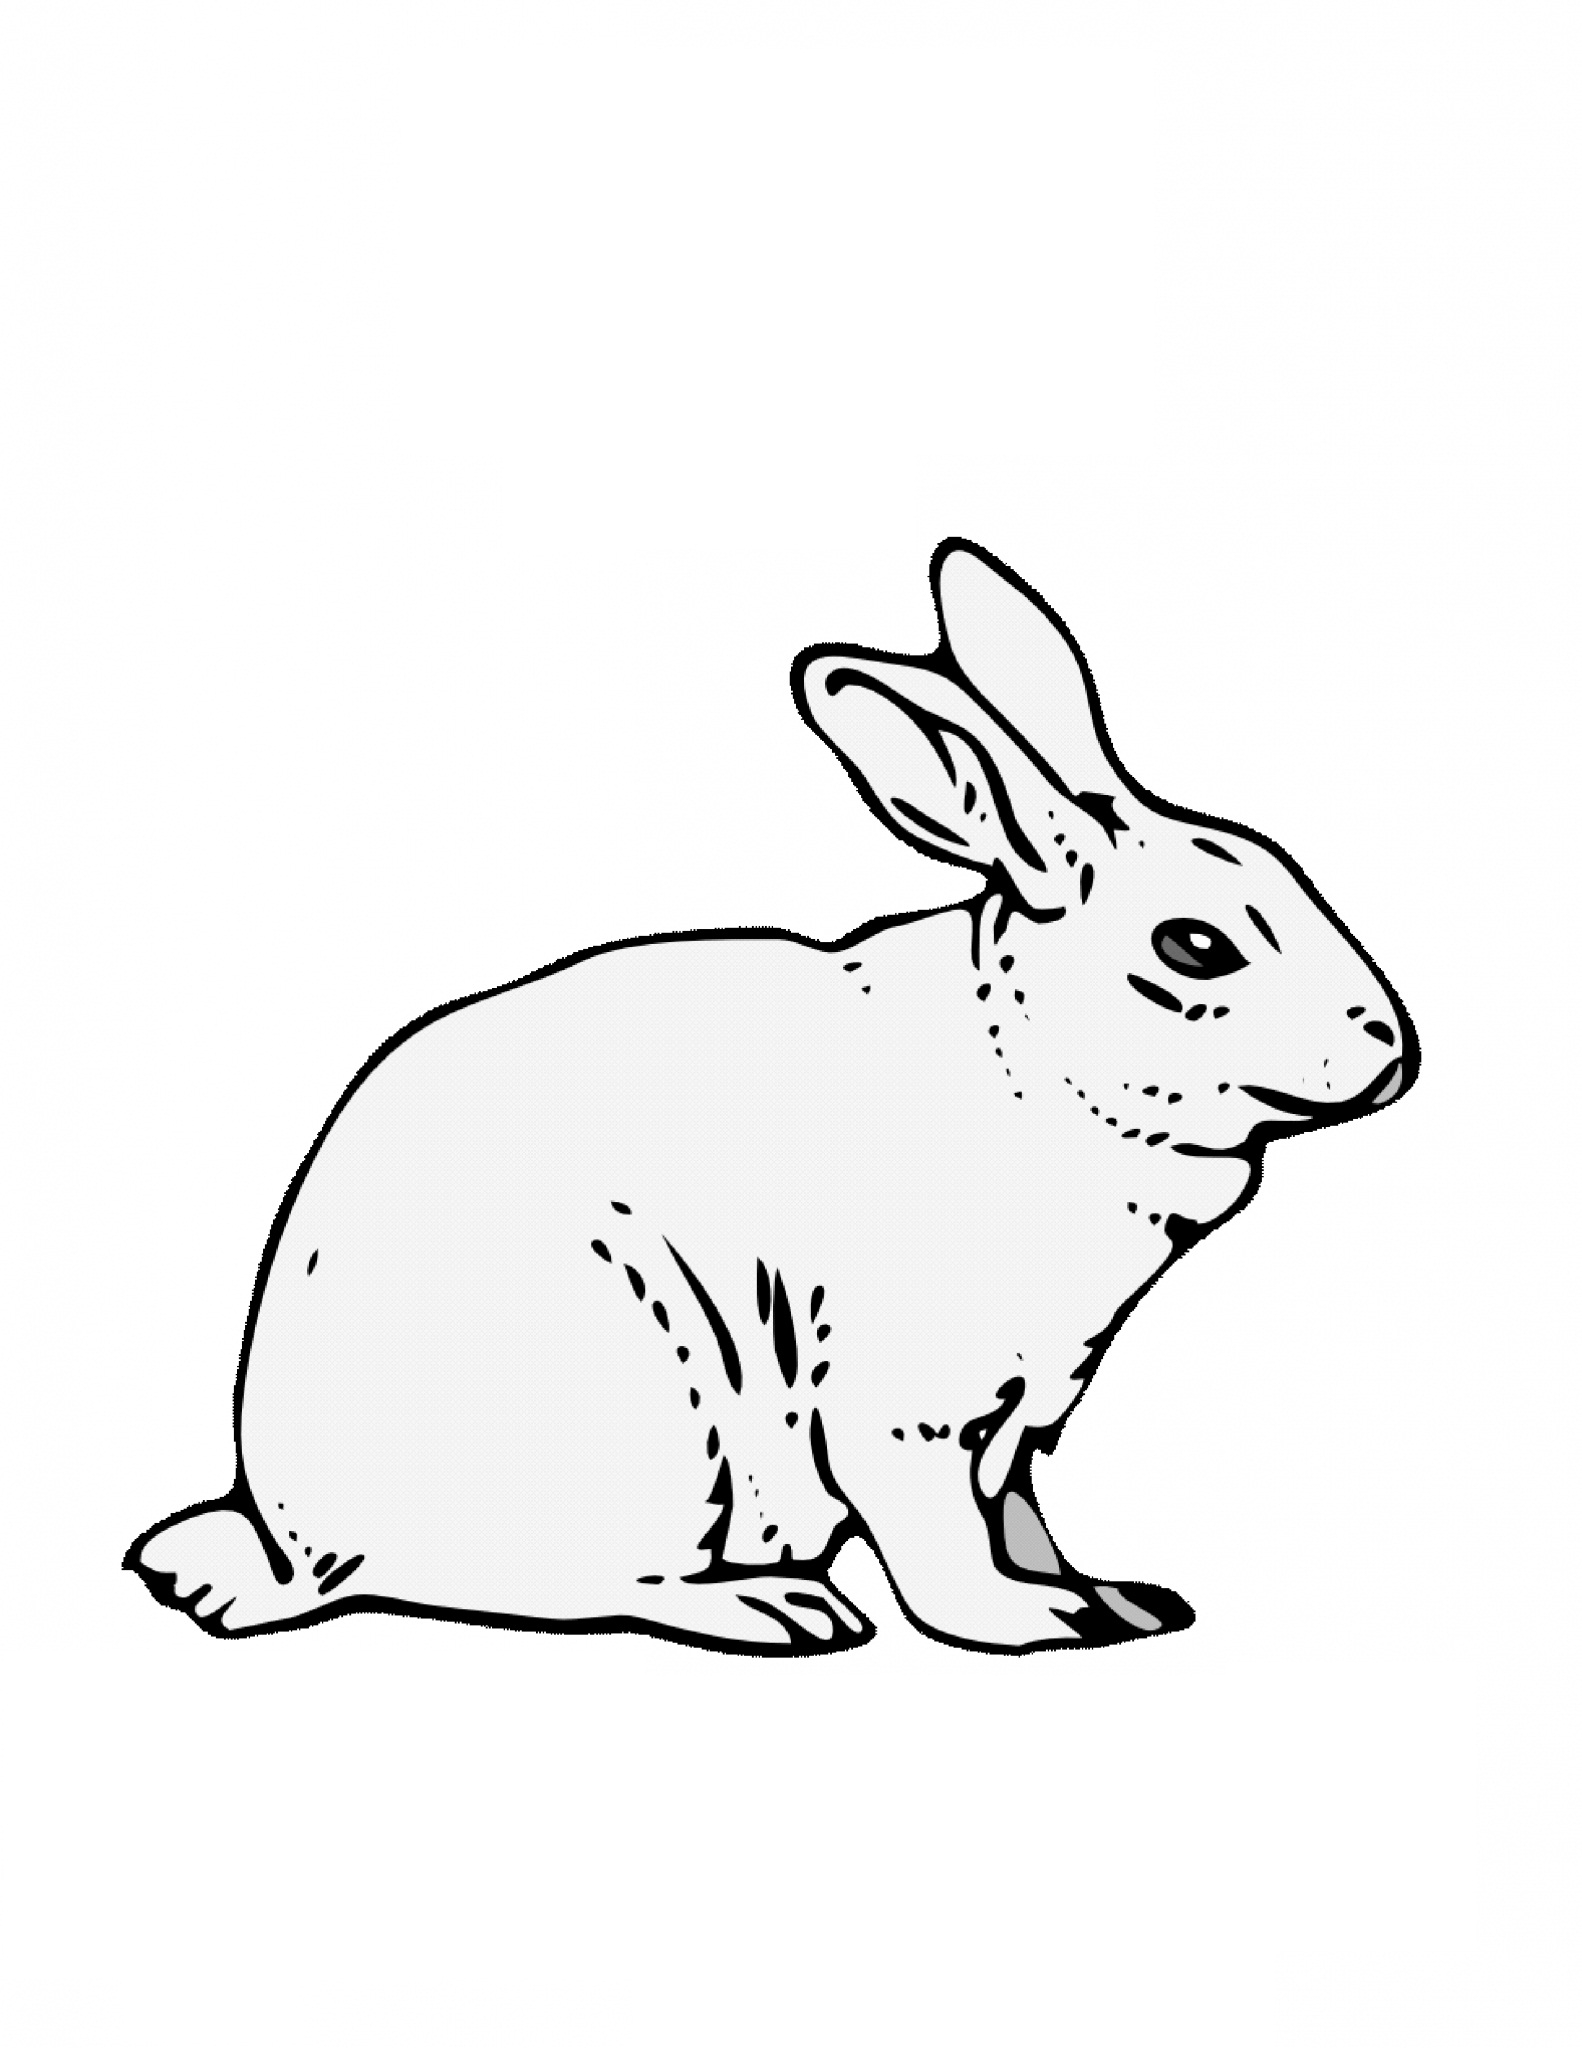 Free Printable Rabbit Coloring Pages for Kids to Print Of Remarkable Realistic Bunny Coloring Pages Rabb Unknown Download